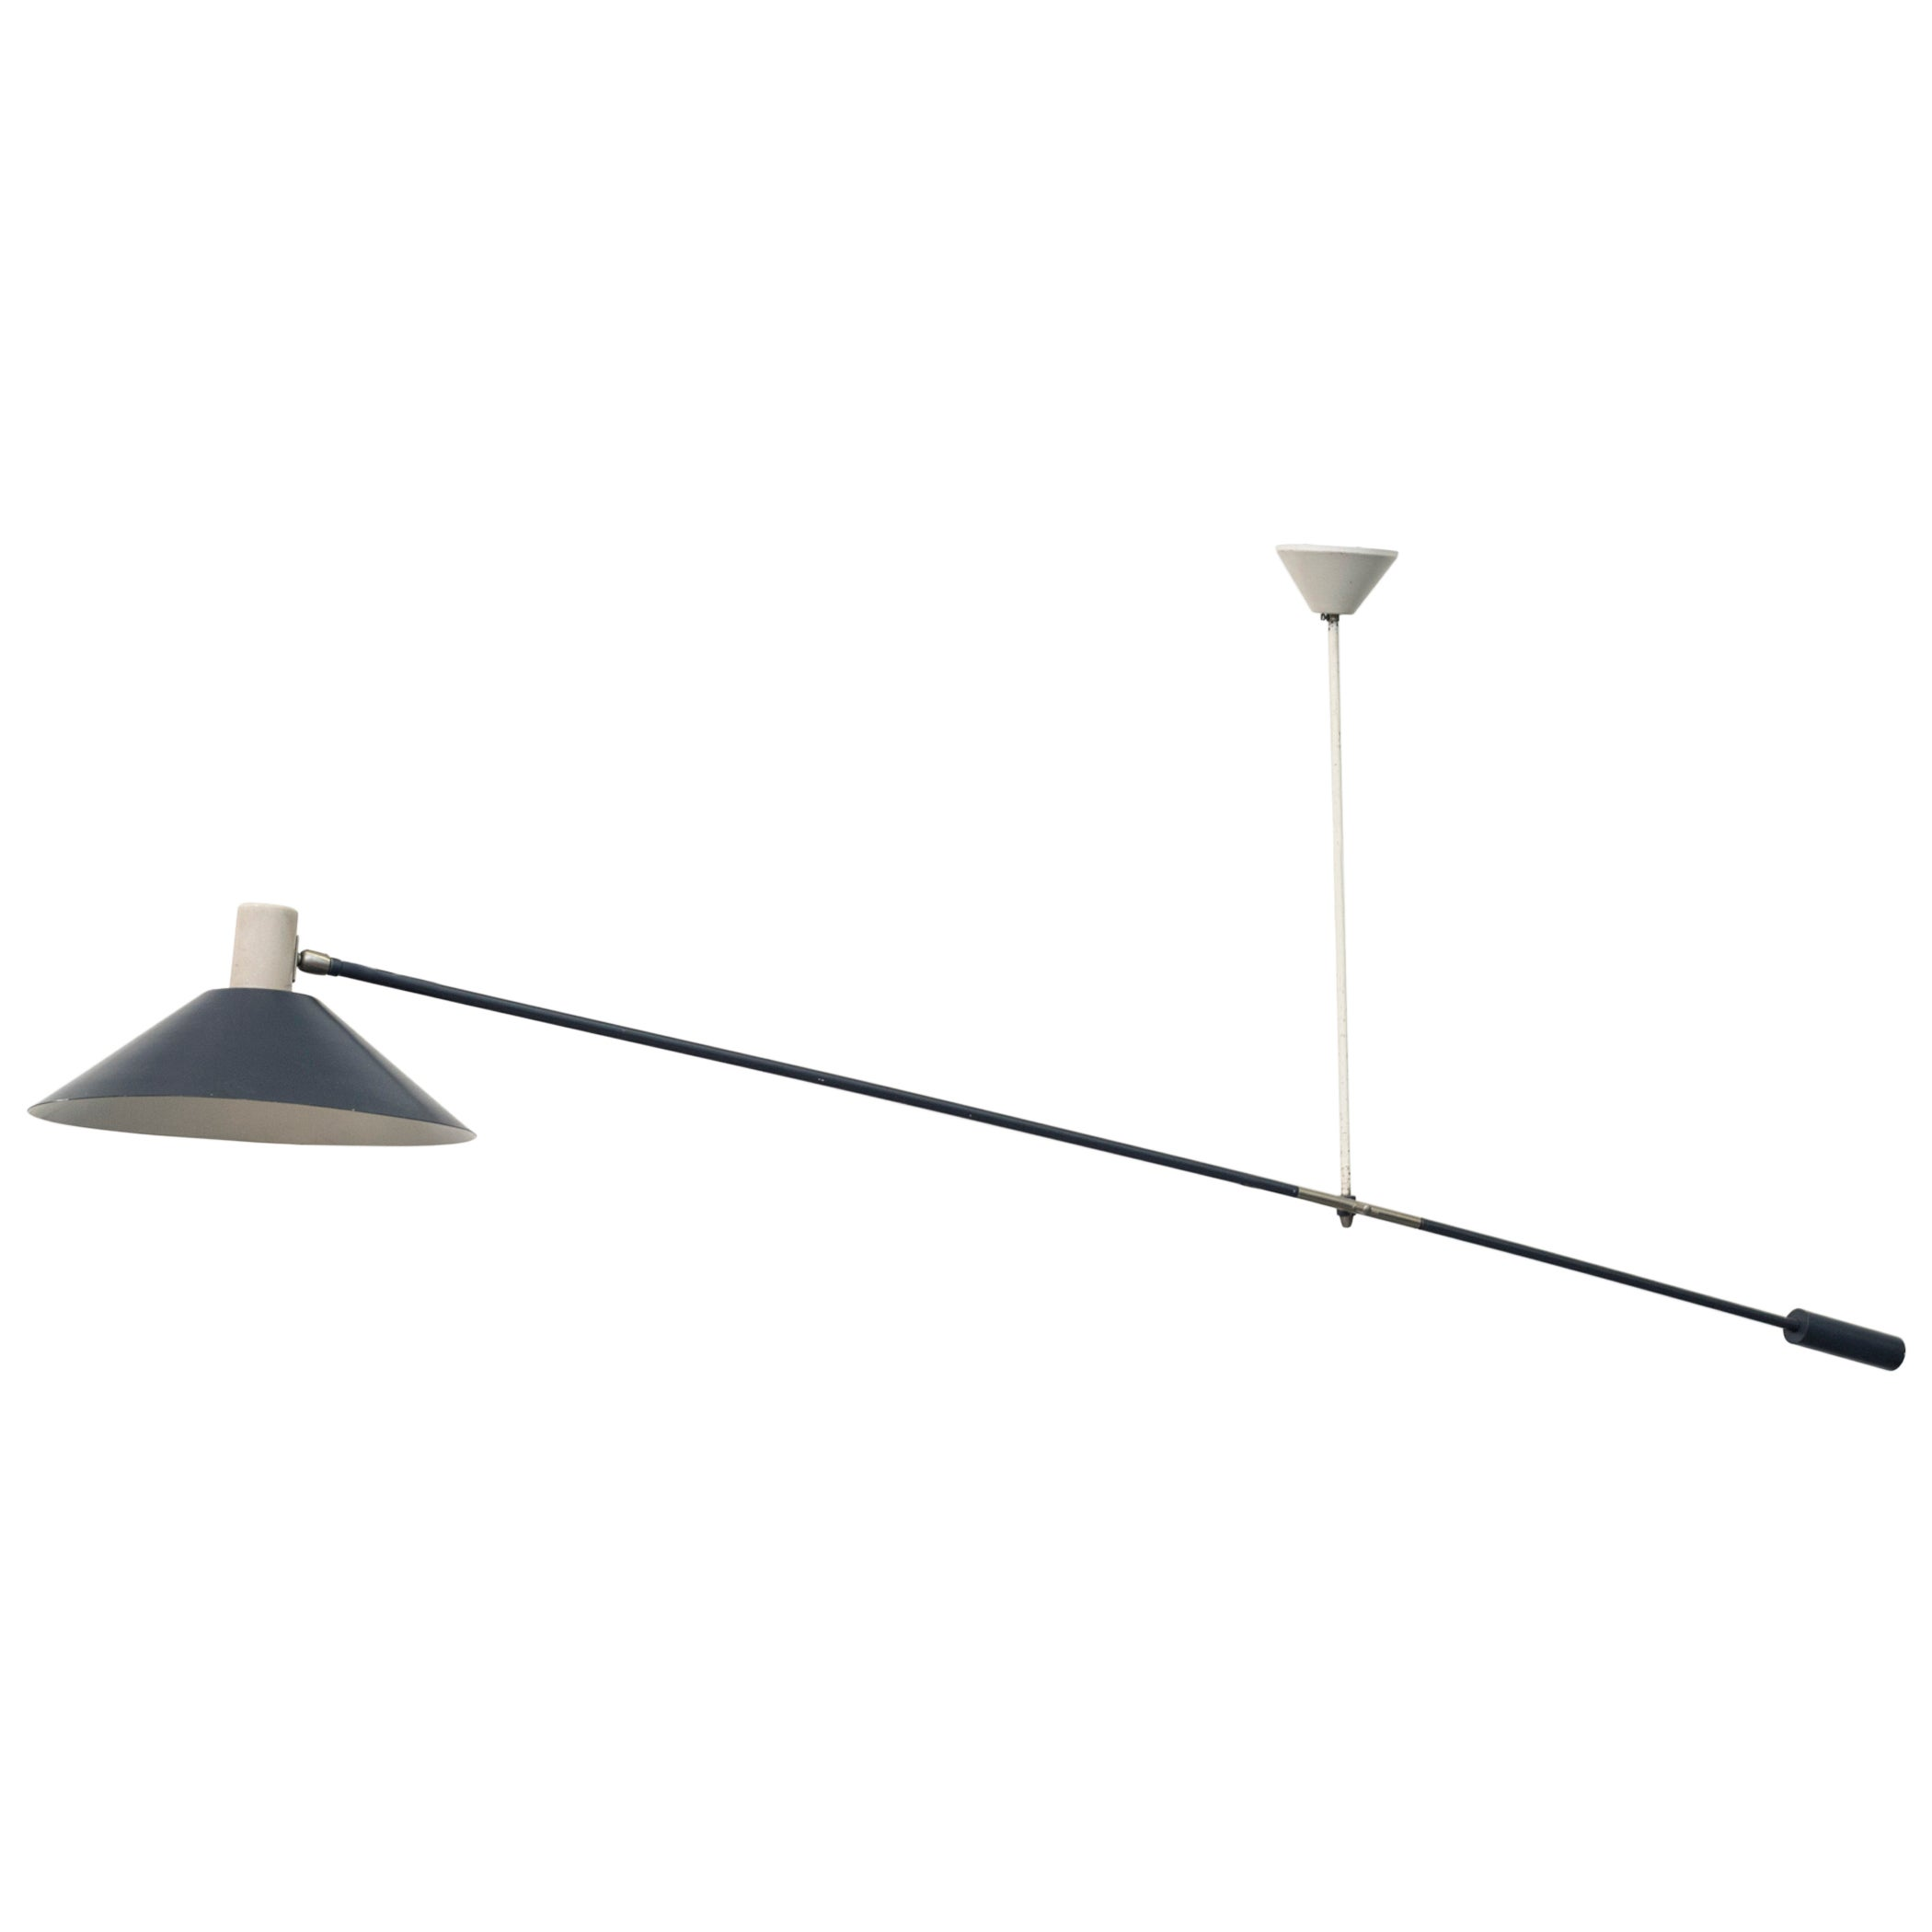 Rare Anvia Ceiling Mount Counter Balance Industrial Lamp